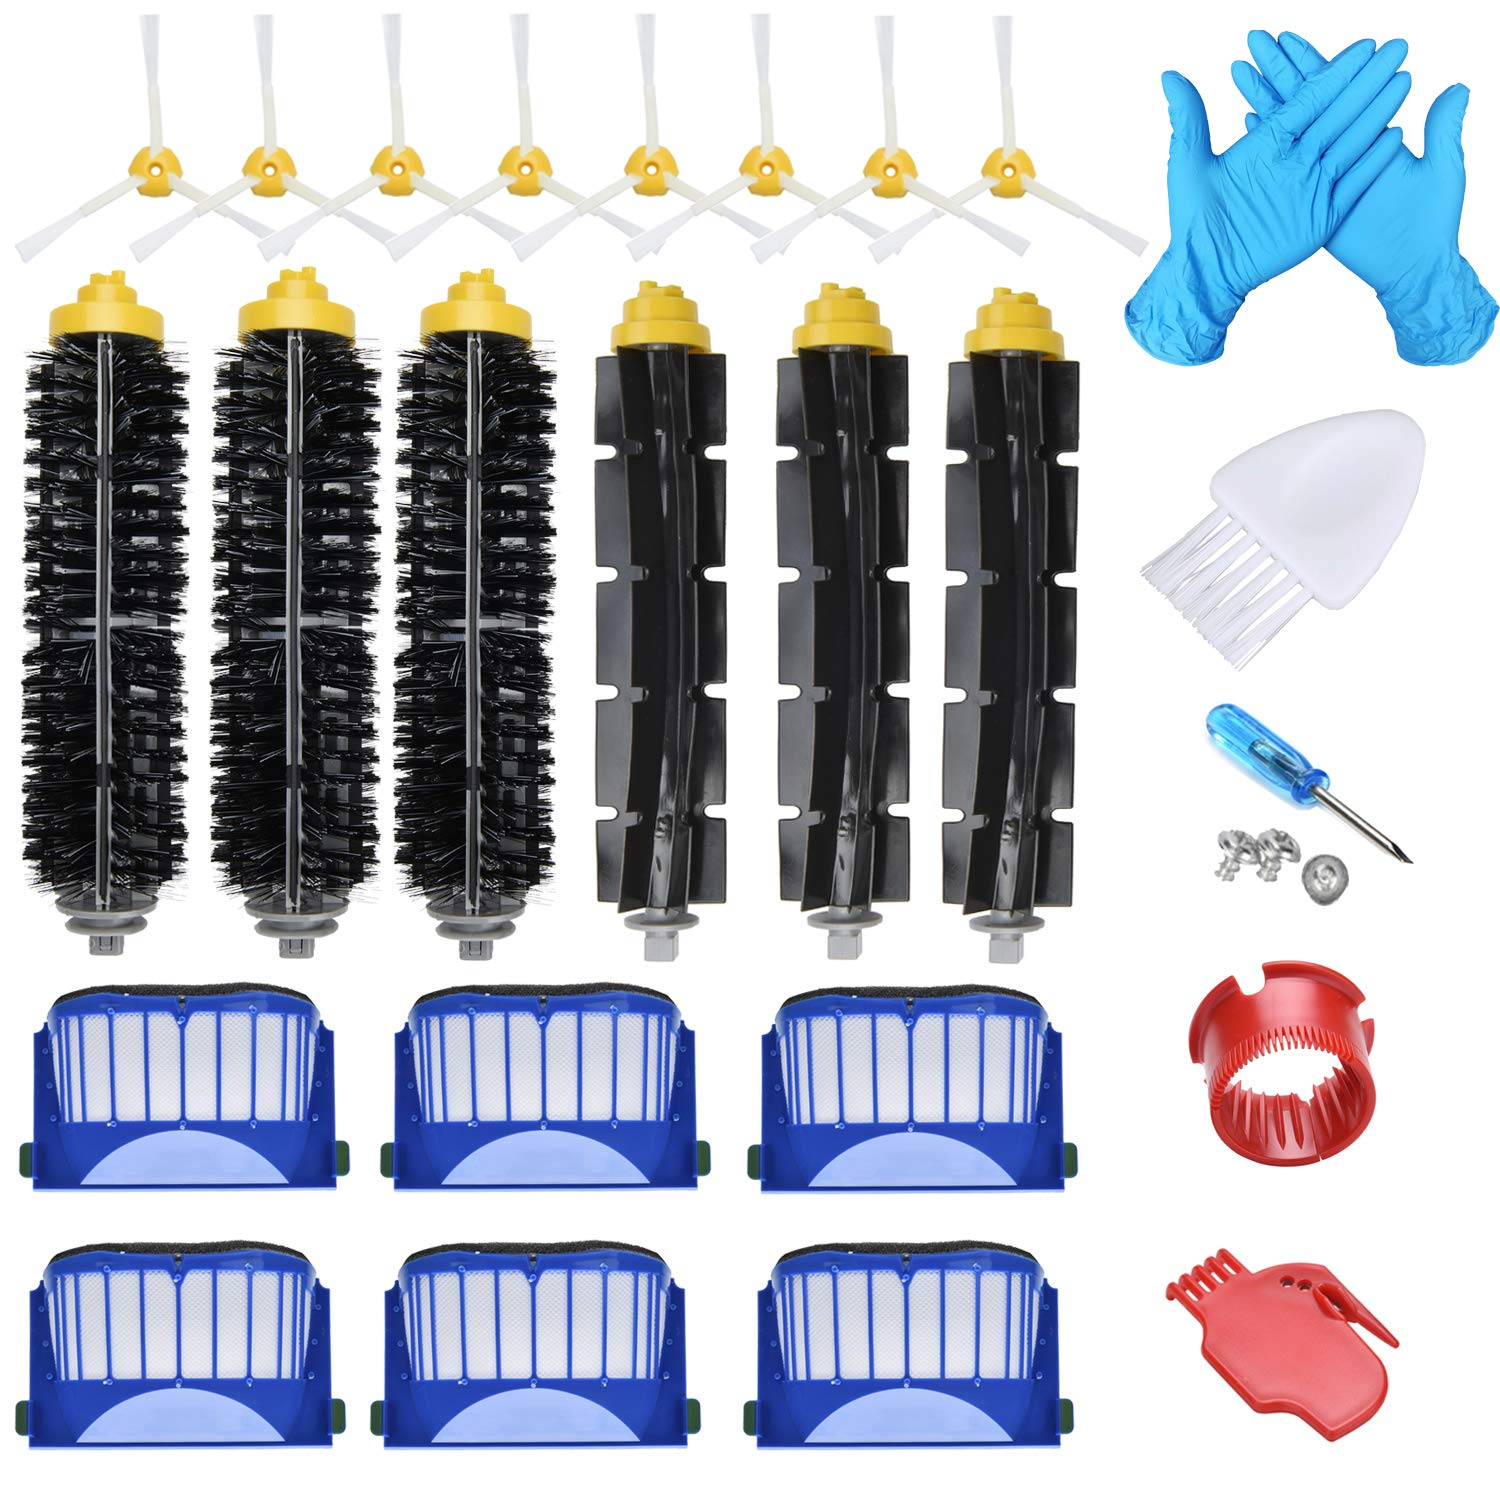 Joybros 22-Pack Replacement Parts Compatible for iRobot Roomba Accessories 600 Series:690 670 671 680 650 630 614 595 585 Filter Side Roller Brush Vacuum Cleaner Replenishment Kit by Joybros